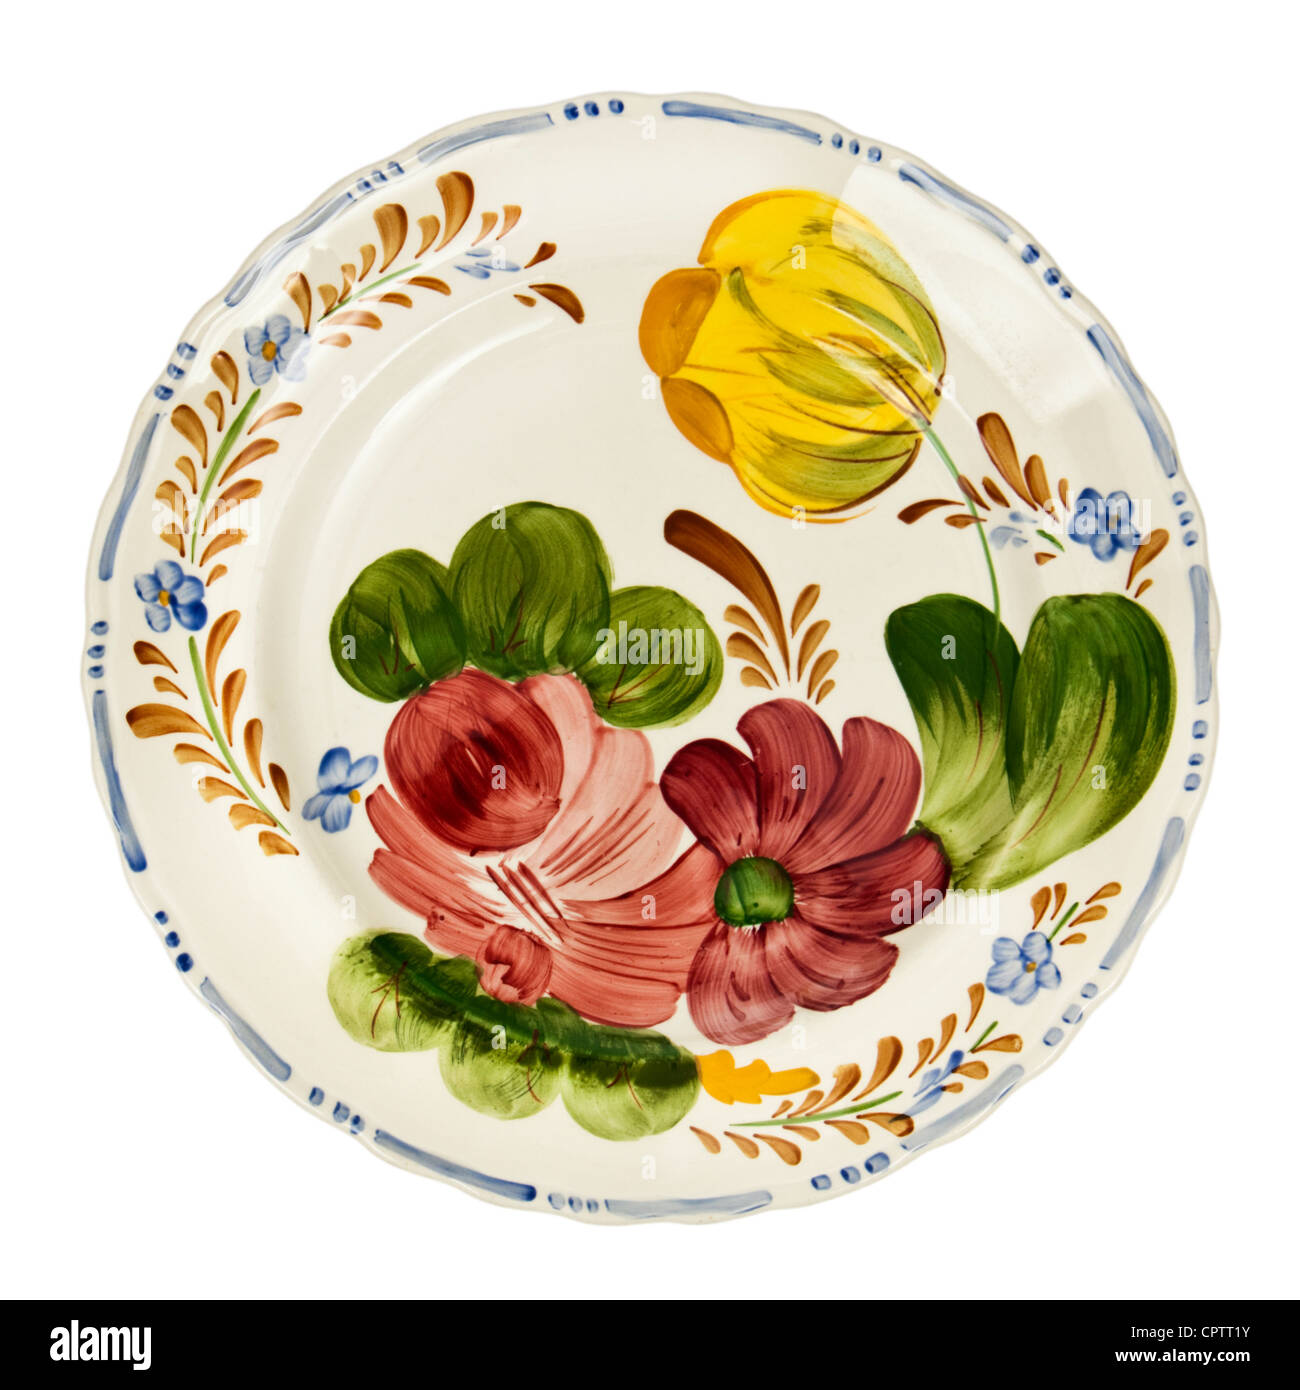 1950\u0027s \u0027Belle Fiore\u0027 Chanticleer / Solian ware hand painted dinner plate by Simpsons Pottery  sc 1 st  Alamy & Hand Painted Plate Stock Photos \u0026 Hand Painted Plate Stock Images ...